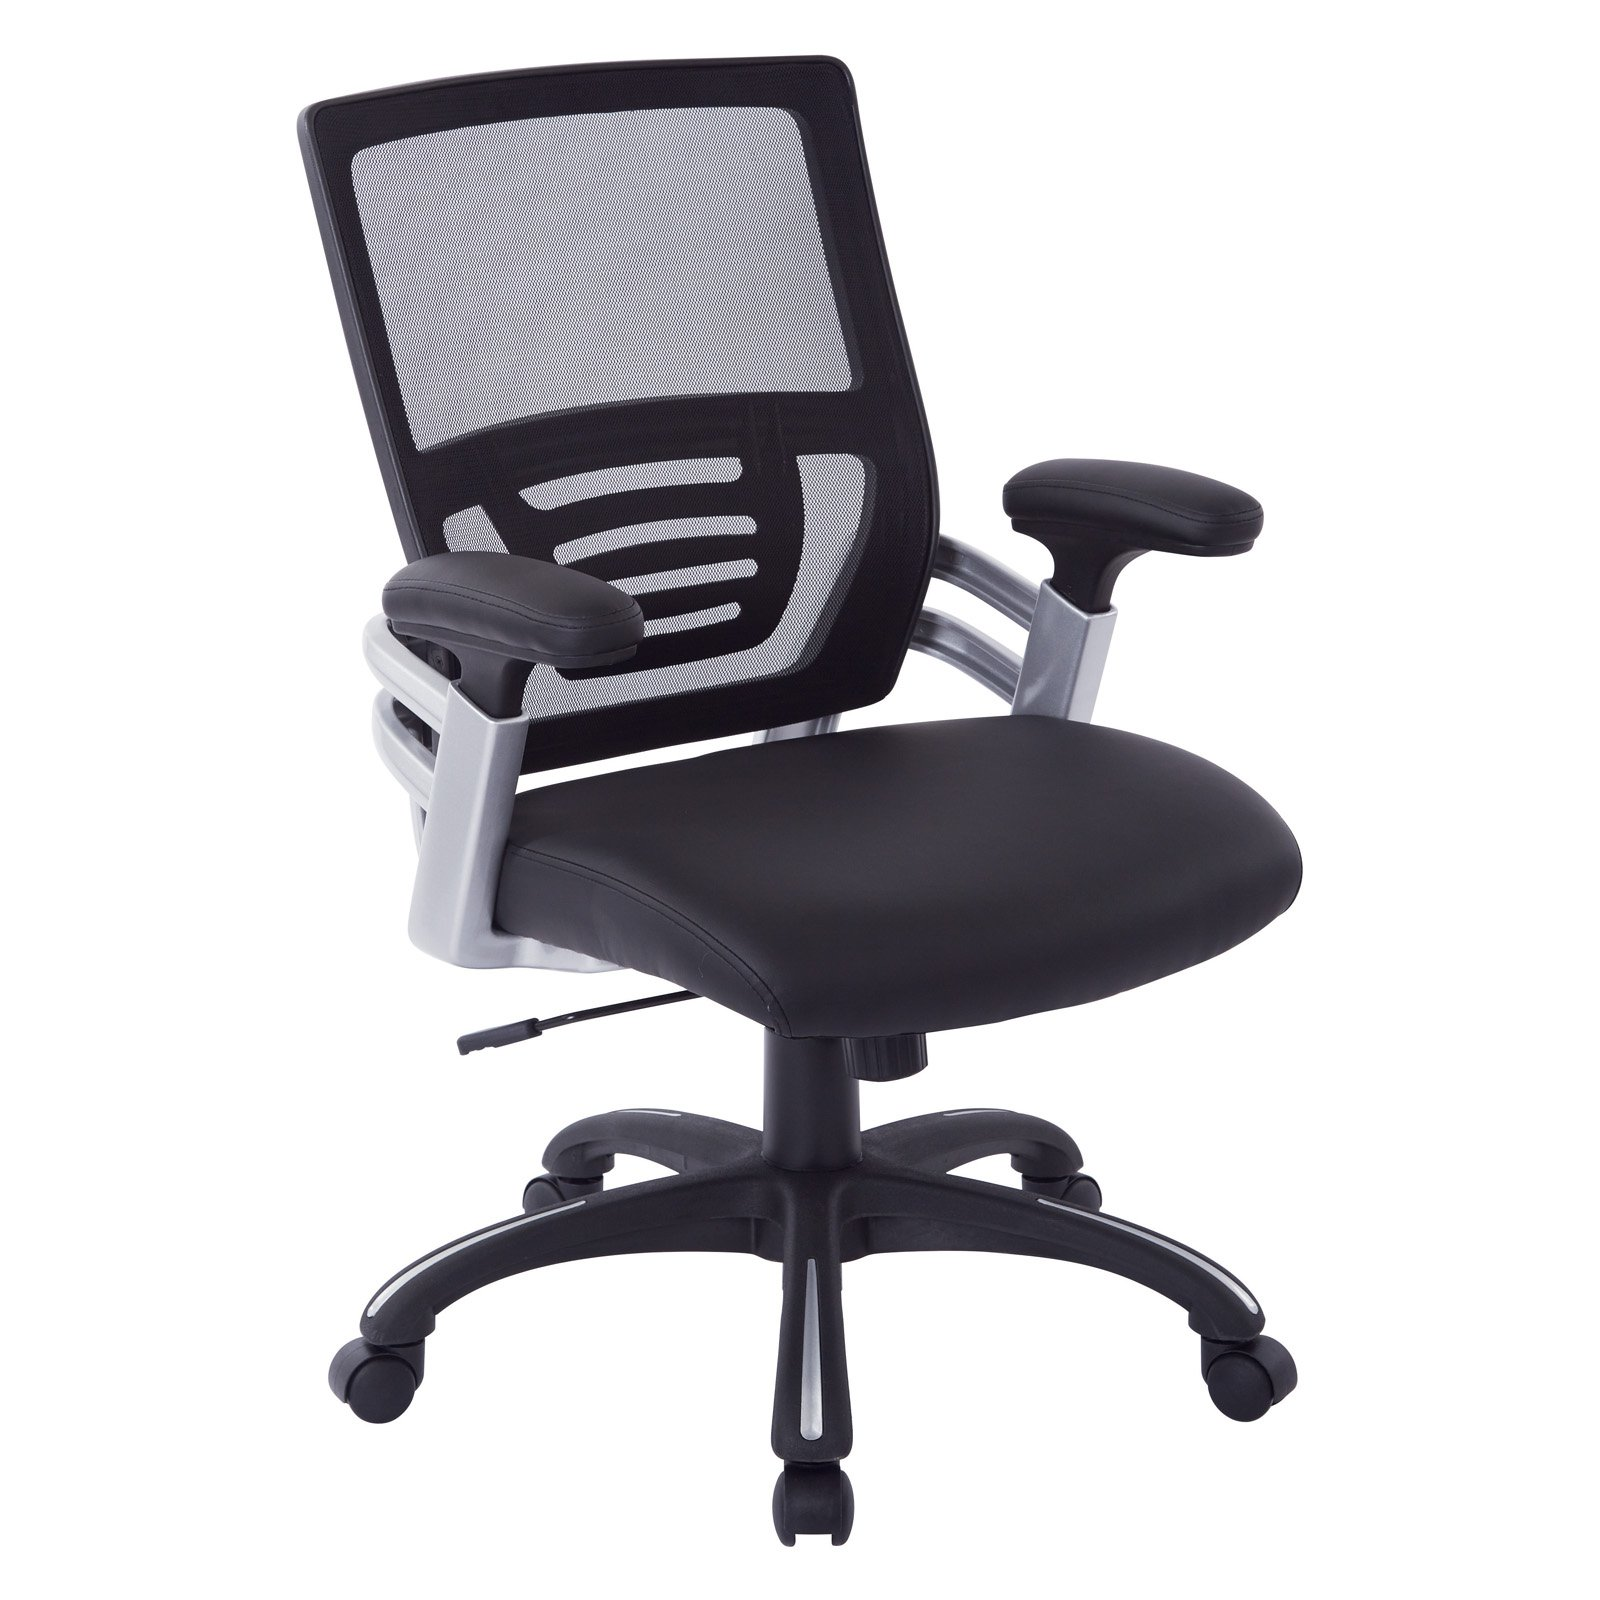 Office Star Mesh Back Managers Chair with Mesh Seat, Adjustable Mesh Padded Arms and Nylon Base with Silver Accents